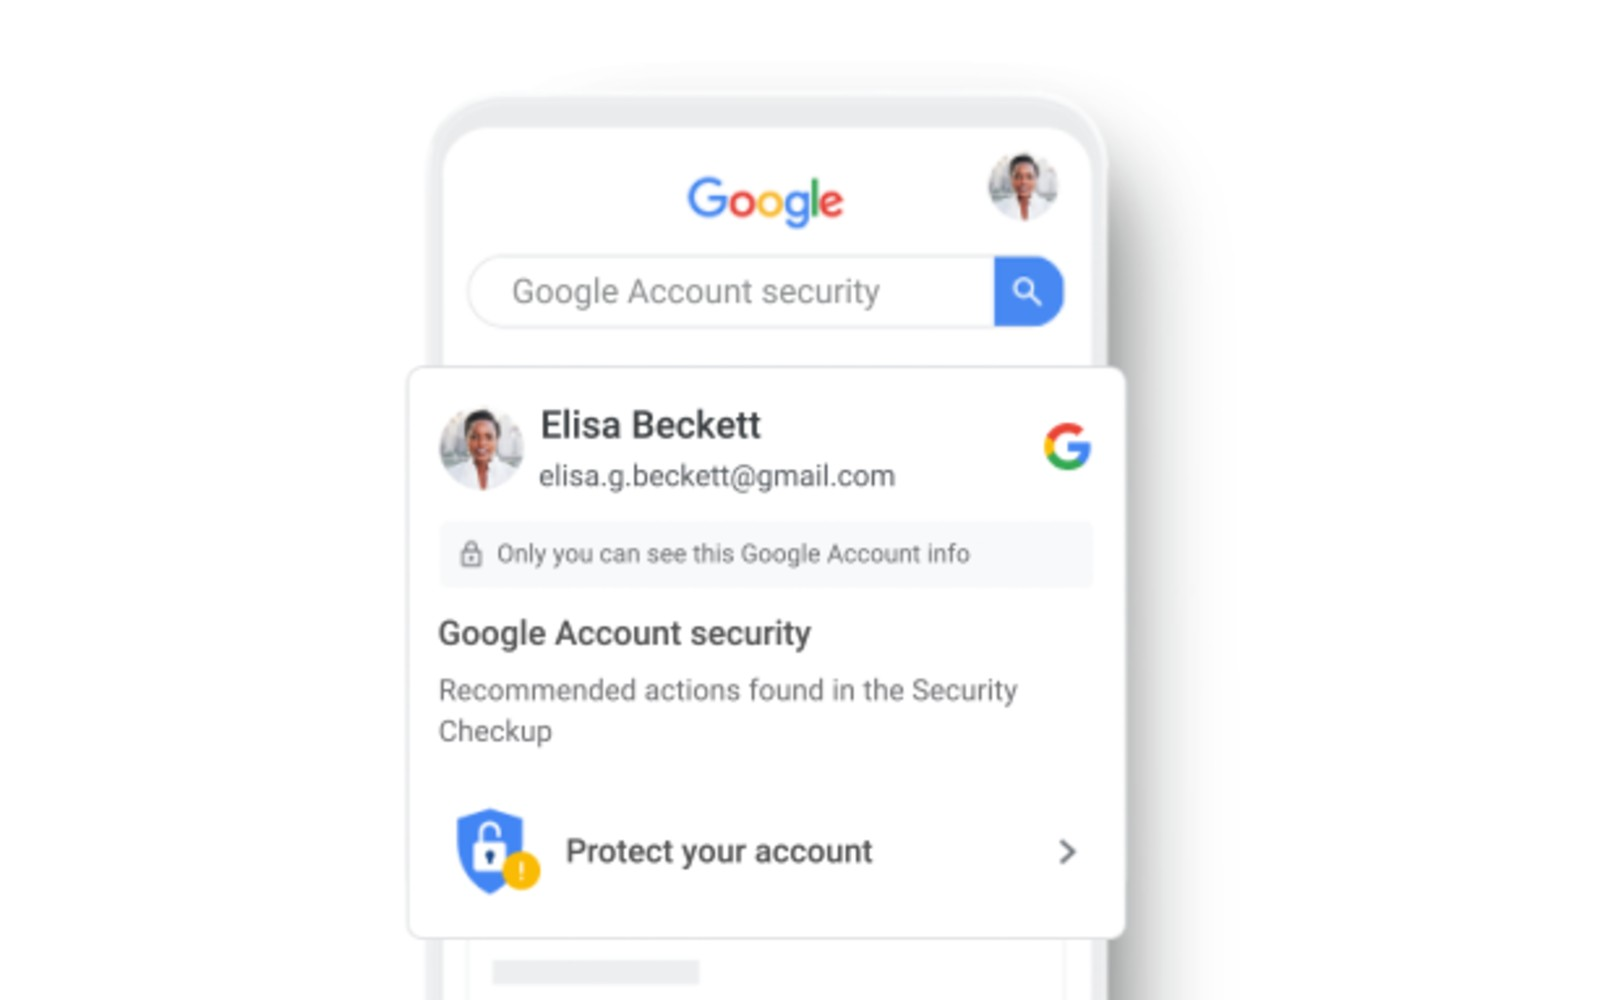 Google apps will add notifications for 'critical' security issues